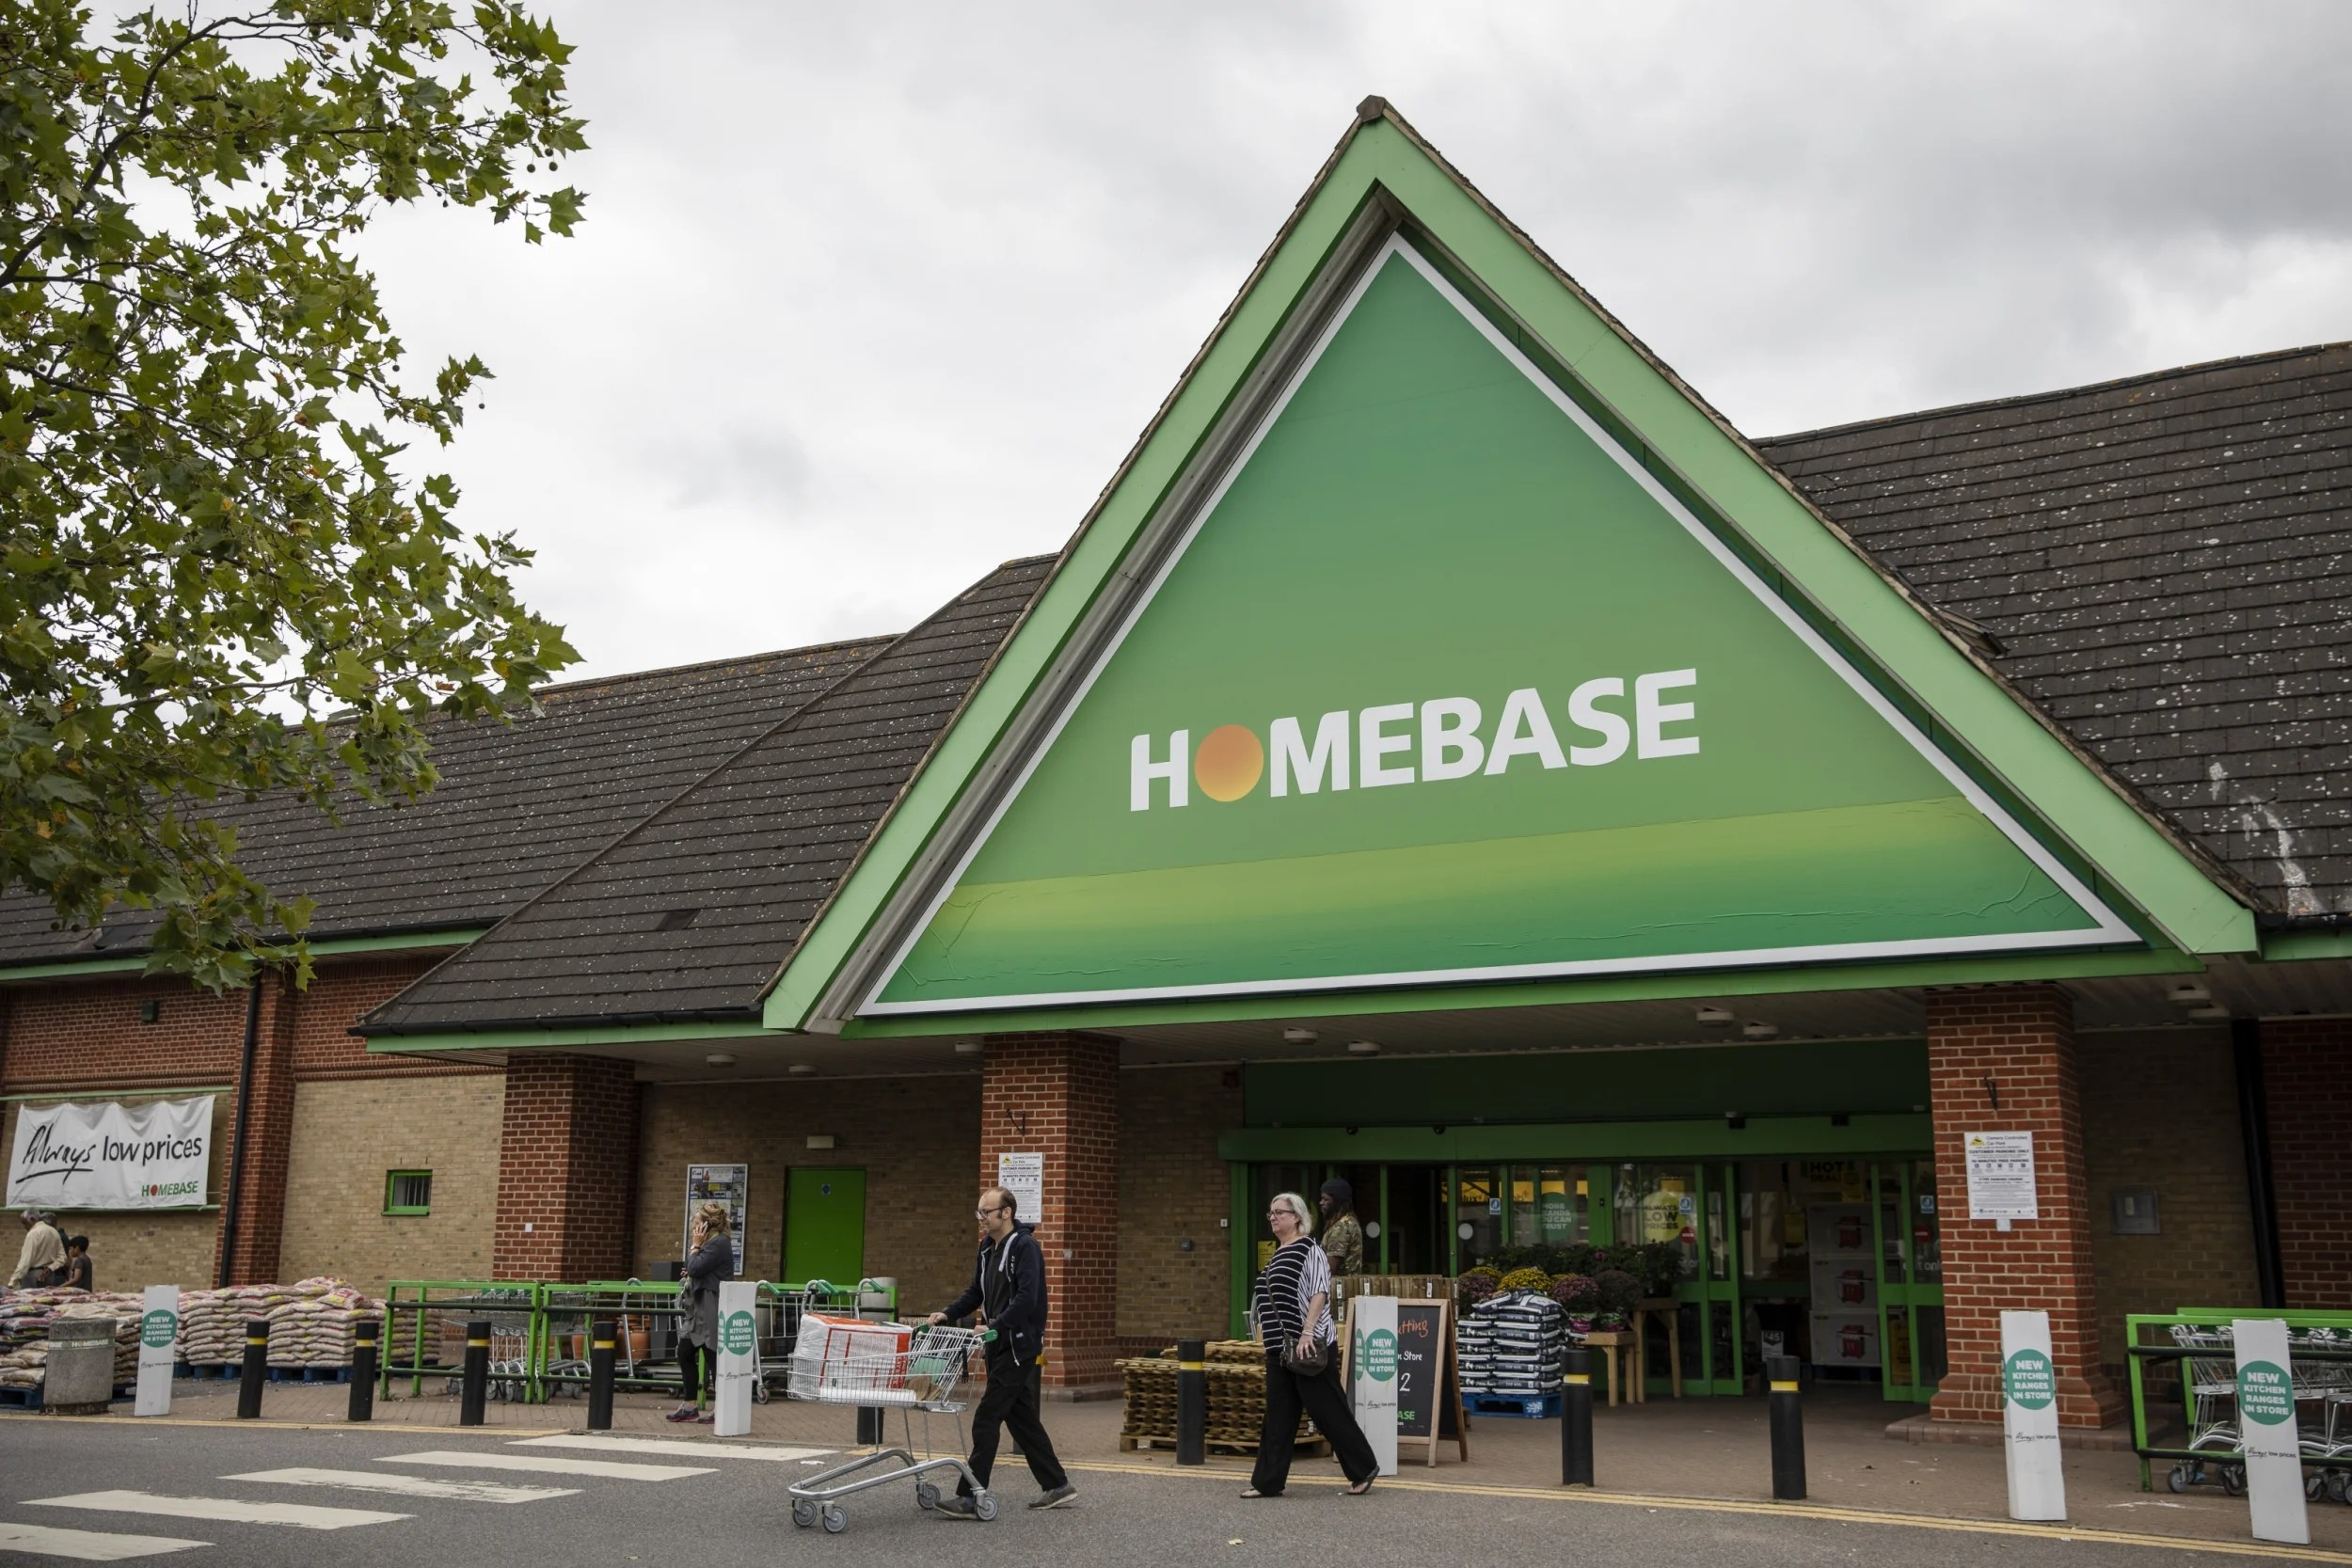 Diy Bank Holiday Offers Homebase Latest News Breaking Stories And Comment The